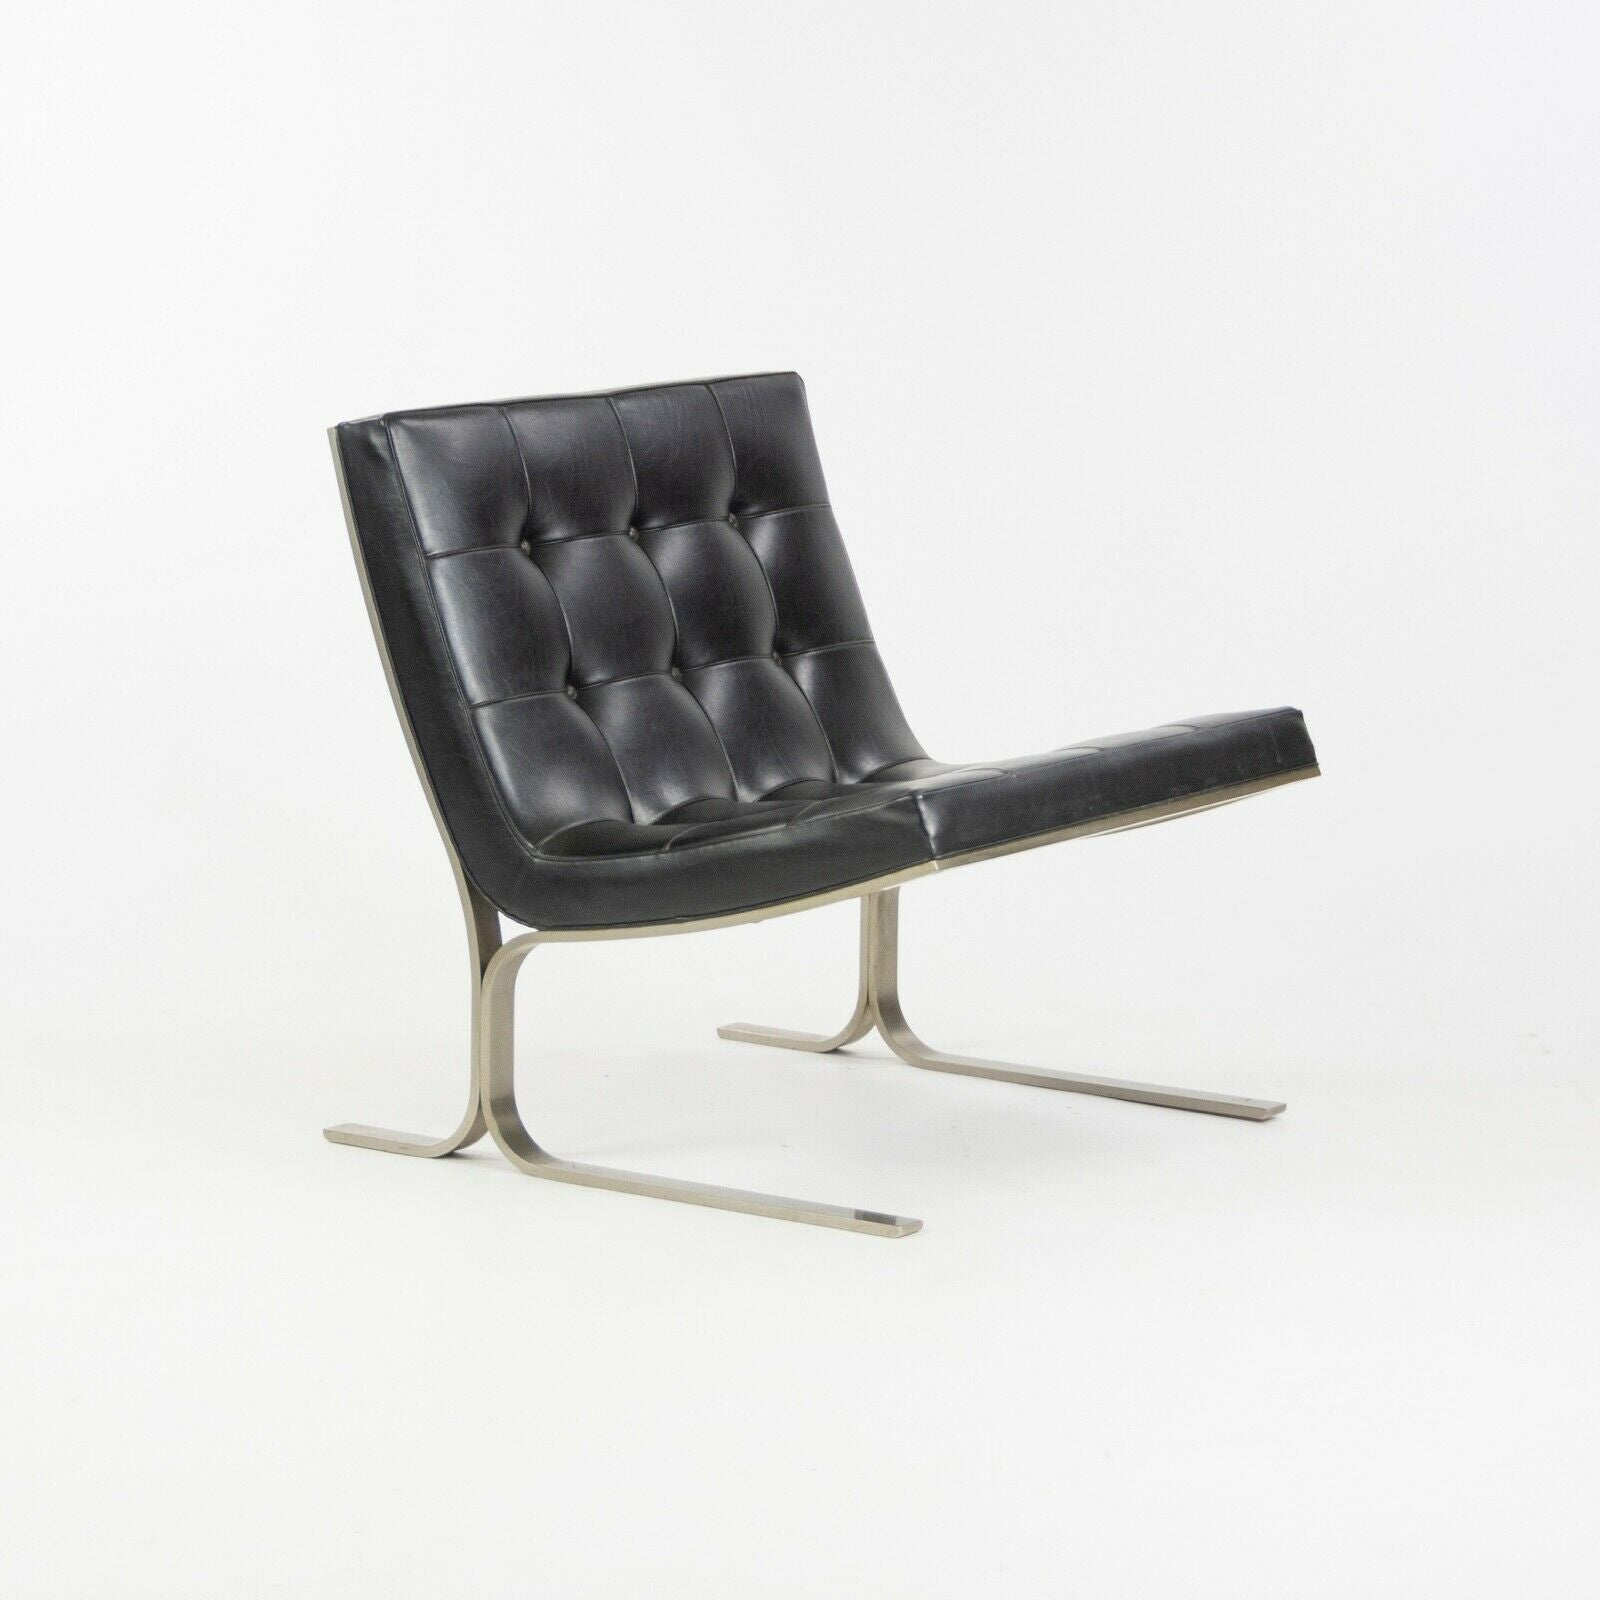 1960s Pair of Nicos Zographos CH28 Ribbon Chairs in Black Leather